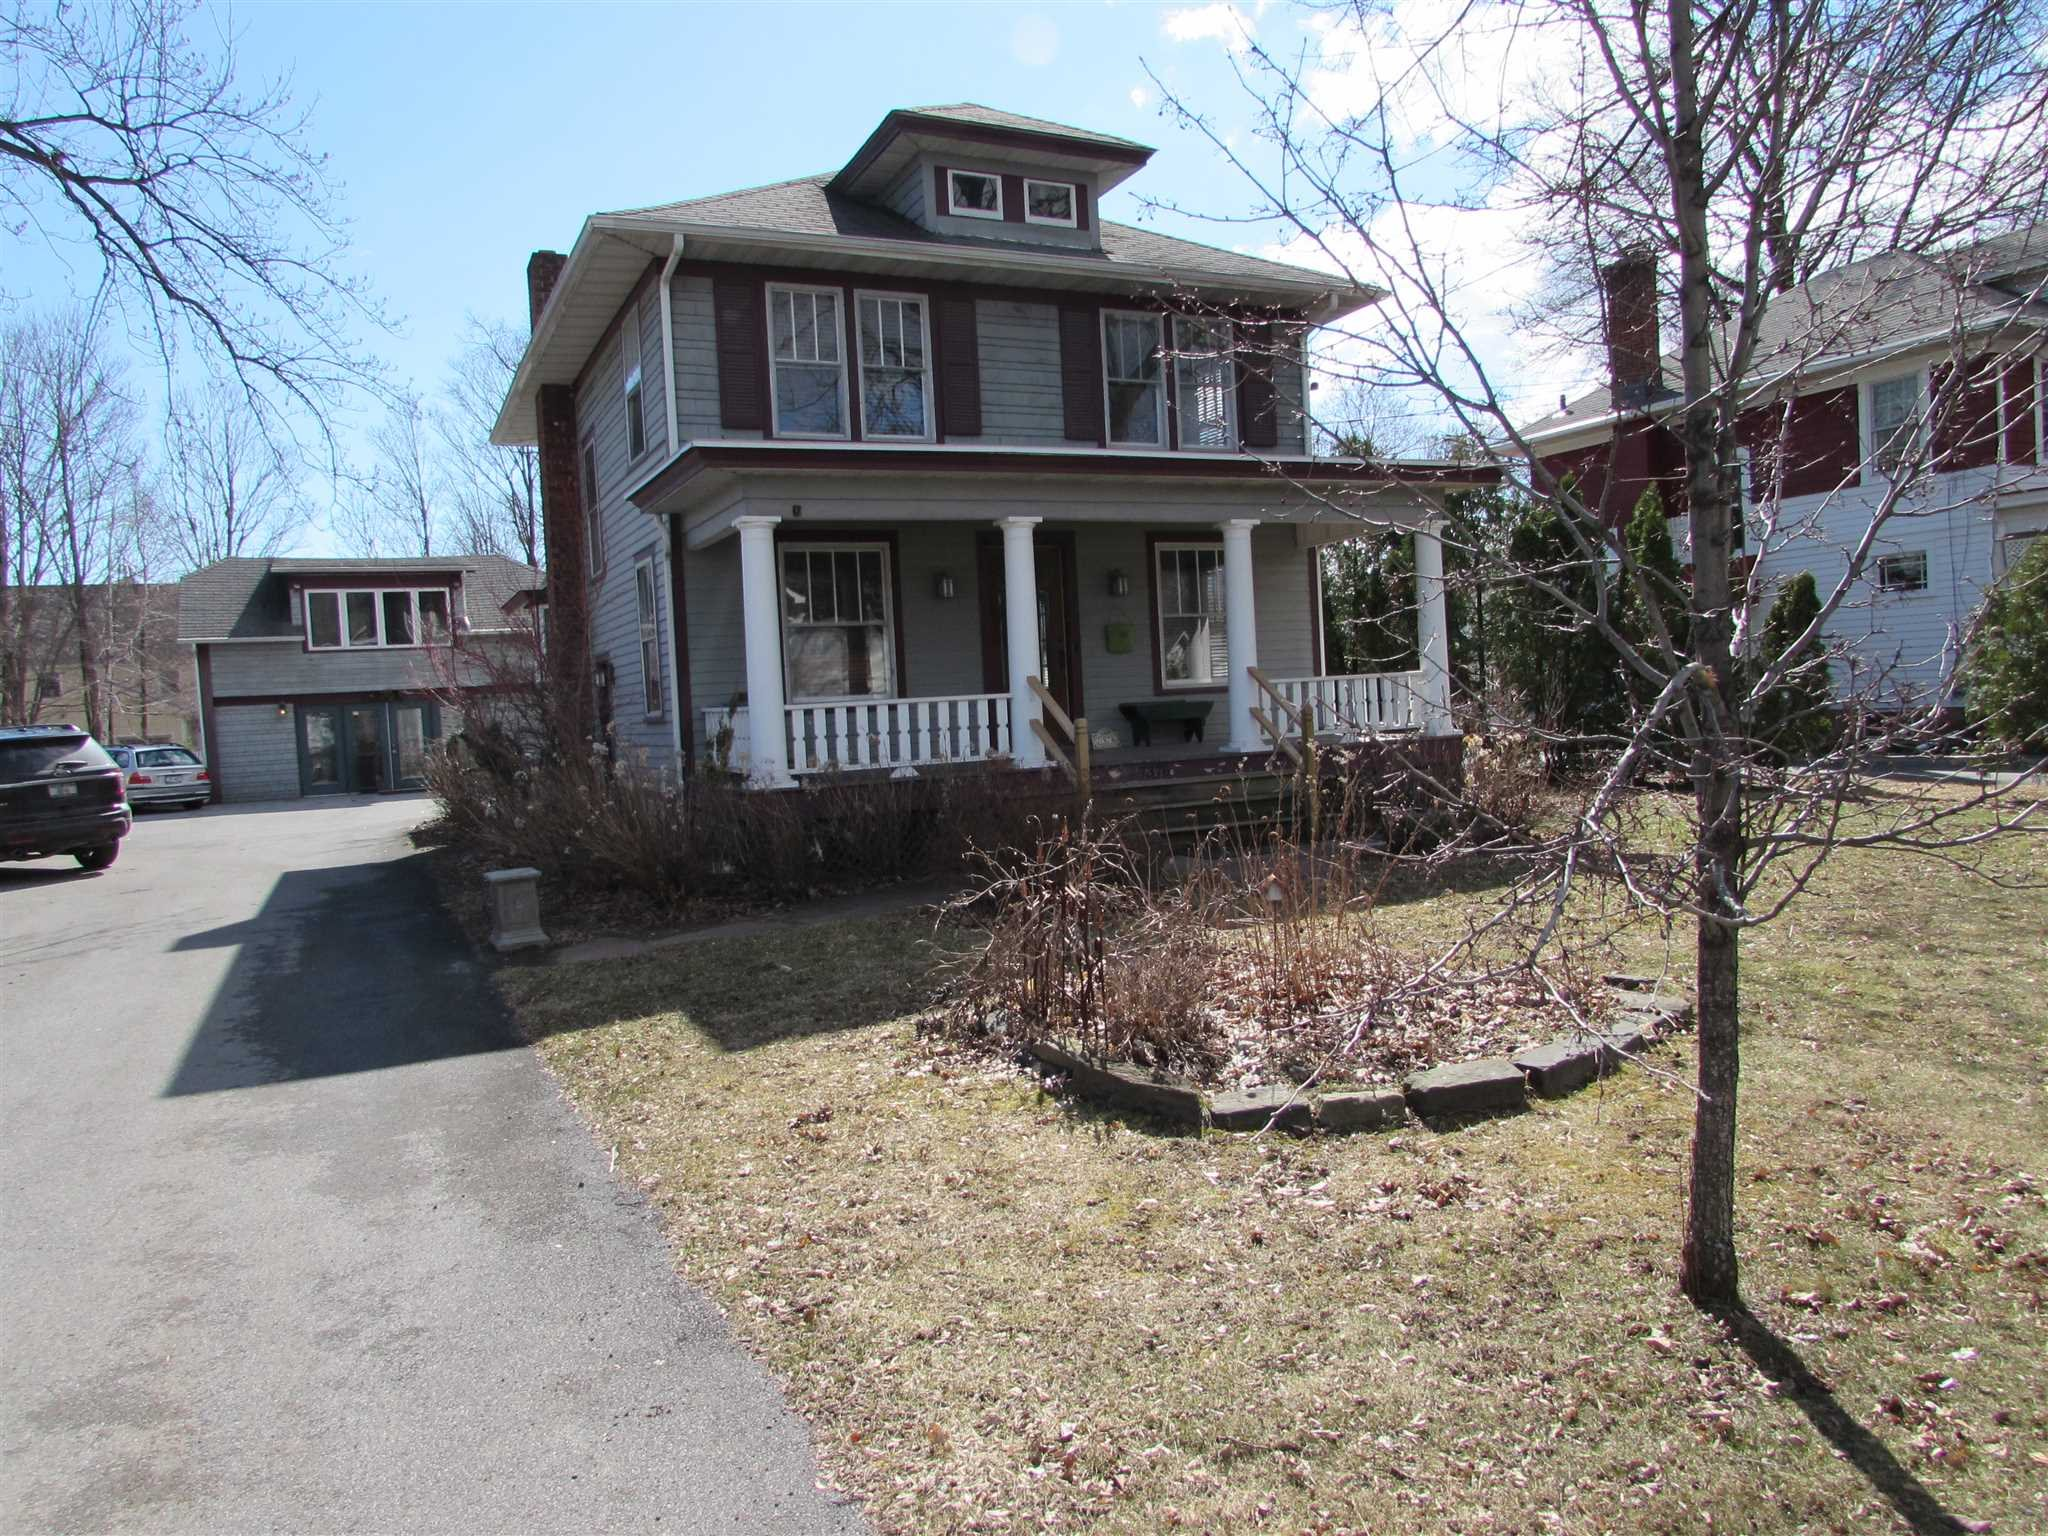 Single Family Home for Sale at 7376 SOUTH BROADWAY 7376 SOUTH BROADWAY Red Hook Village, New York 12571 United States